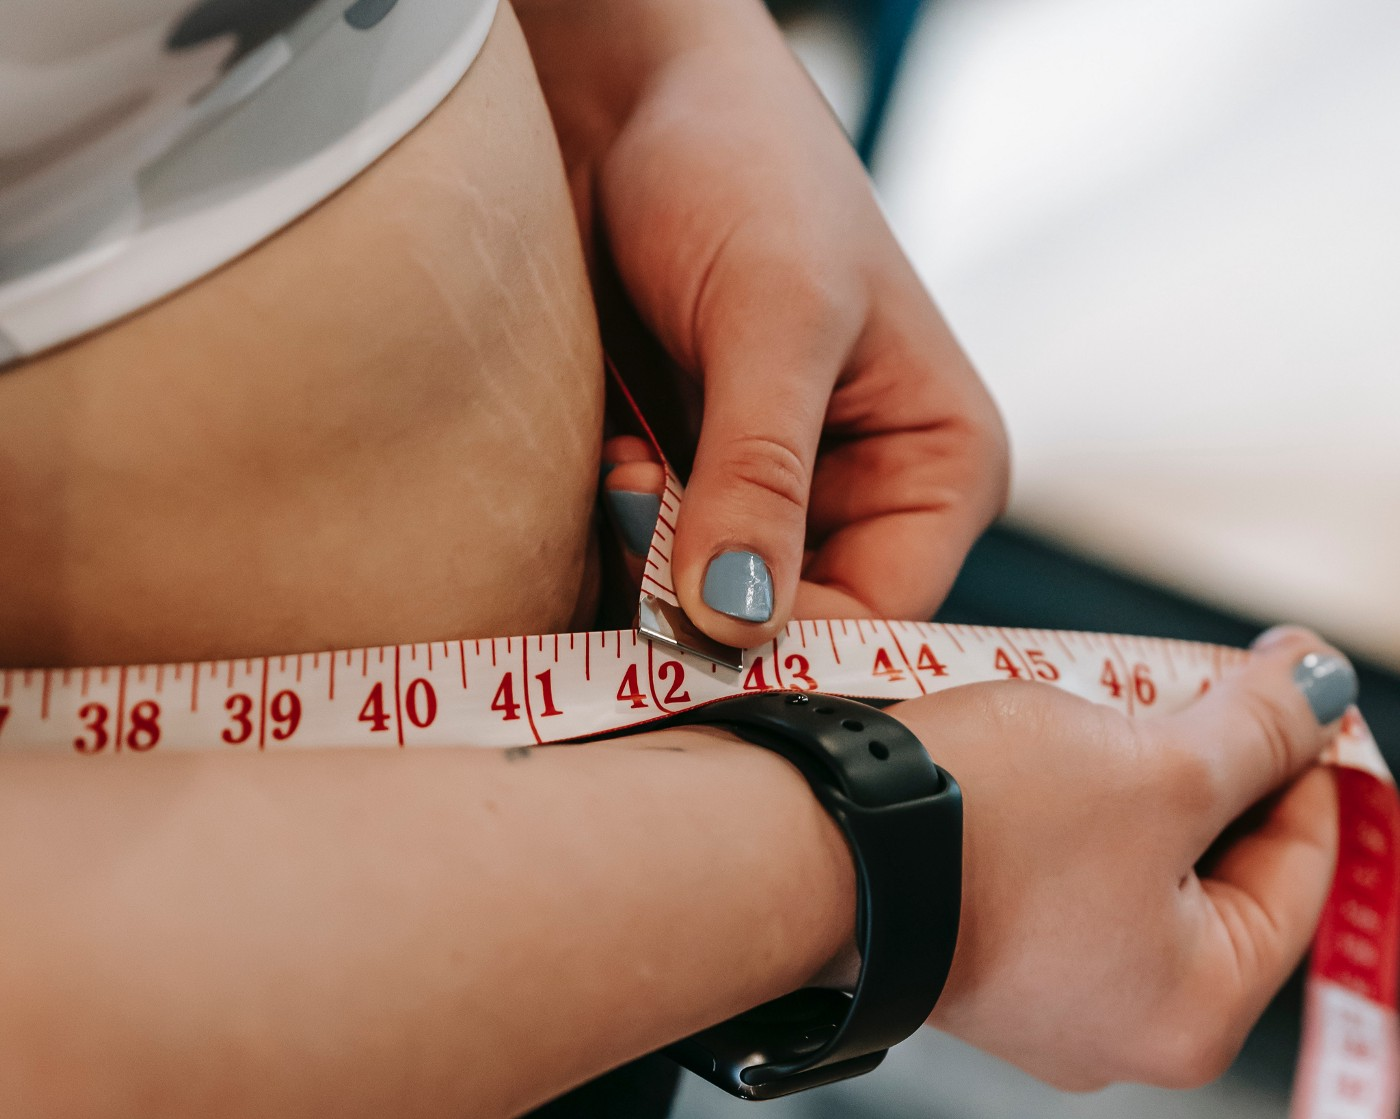 Measuring belly fat.